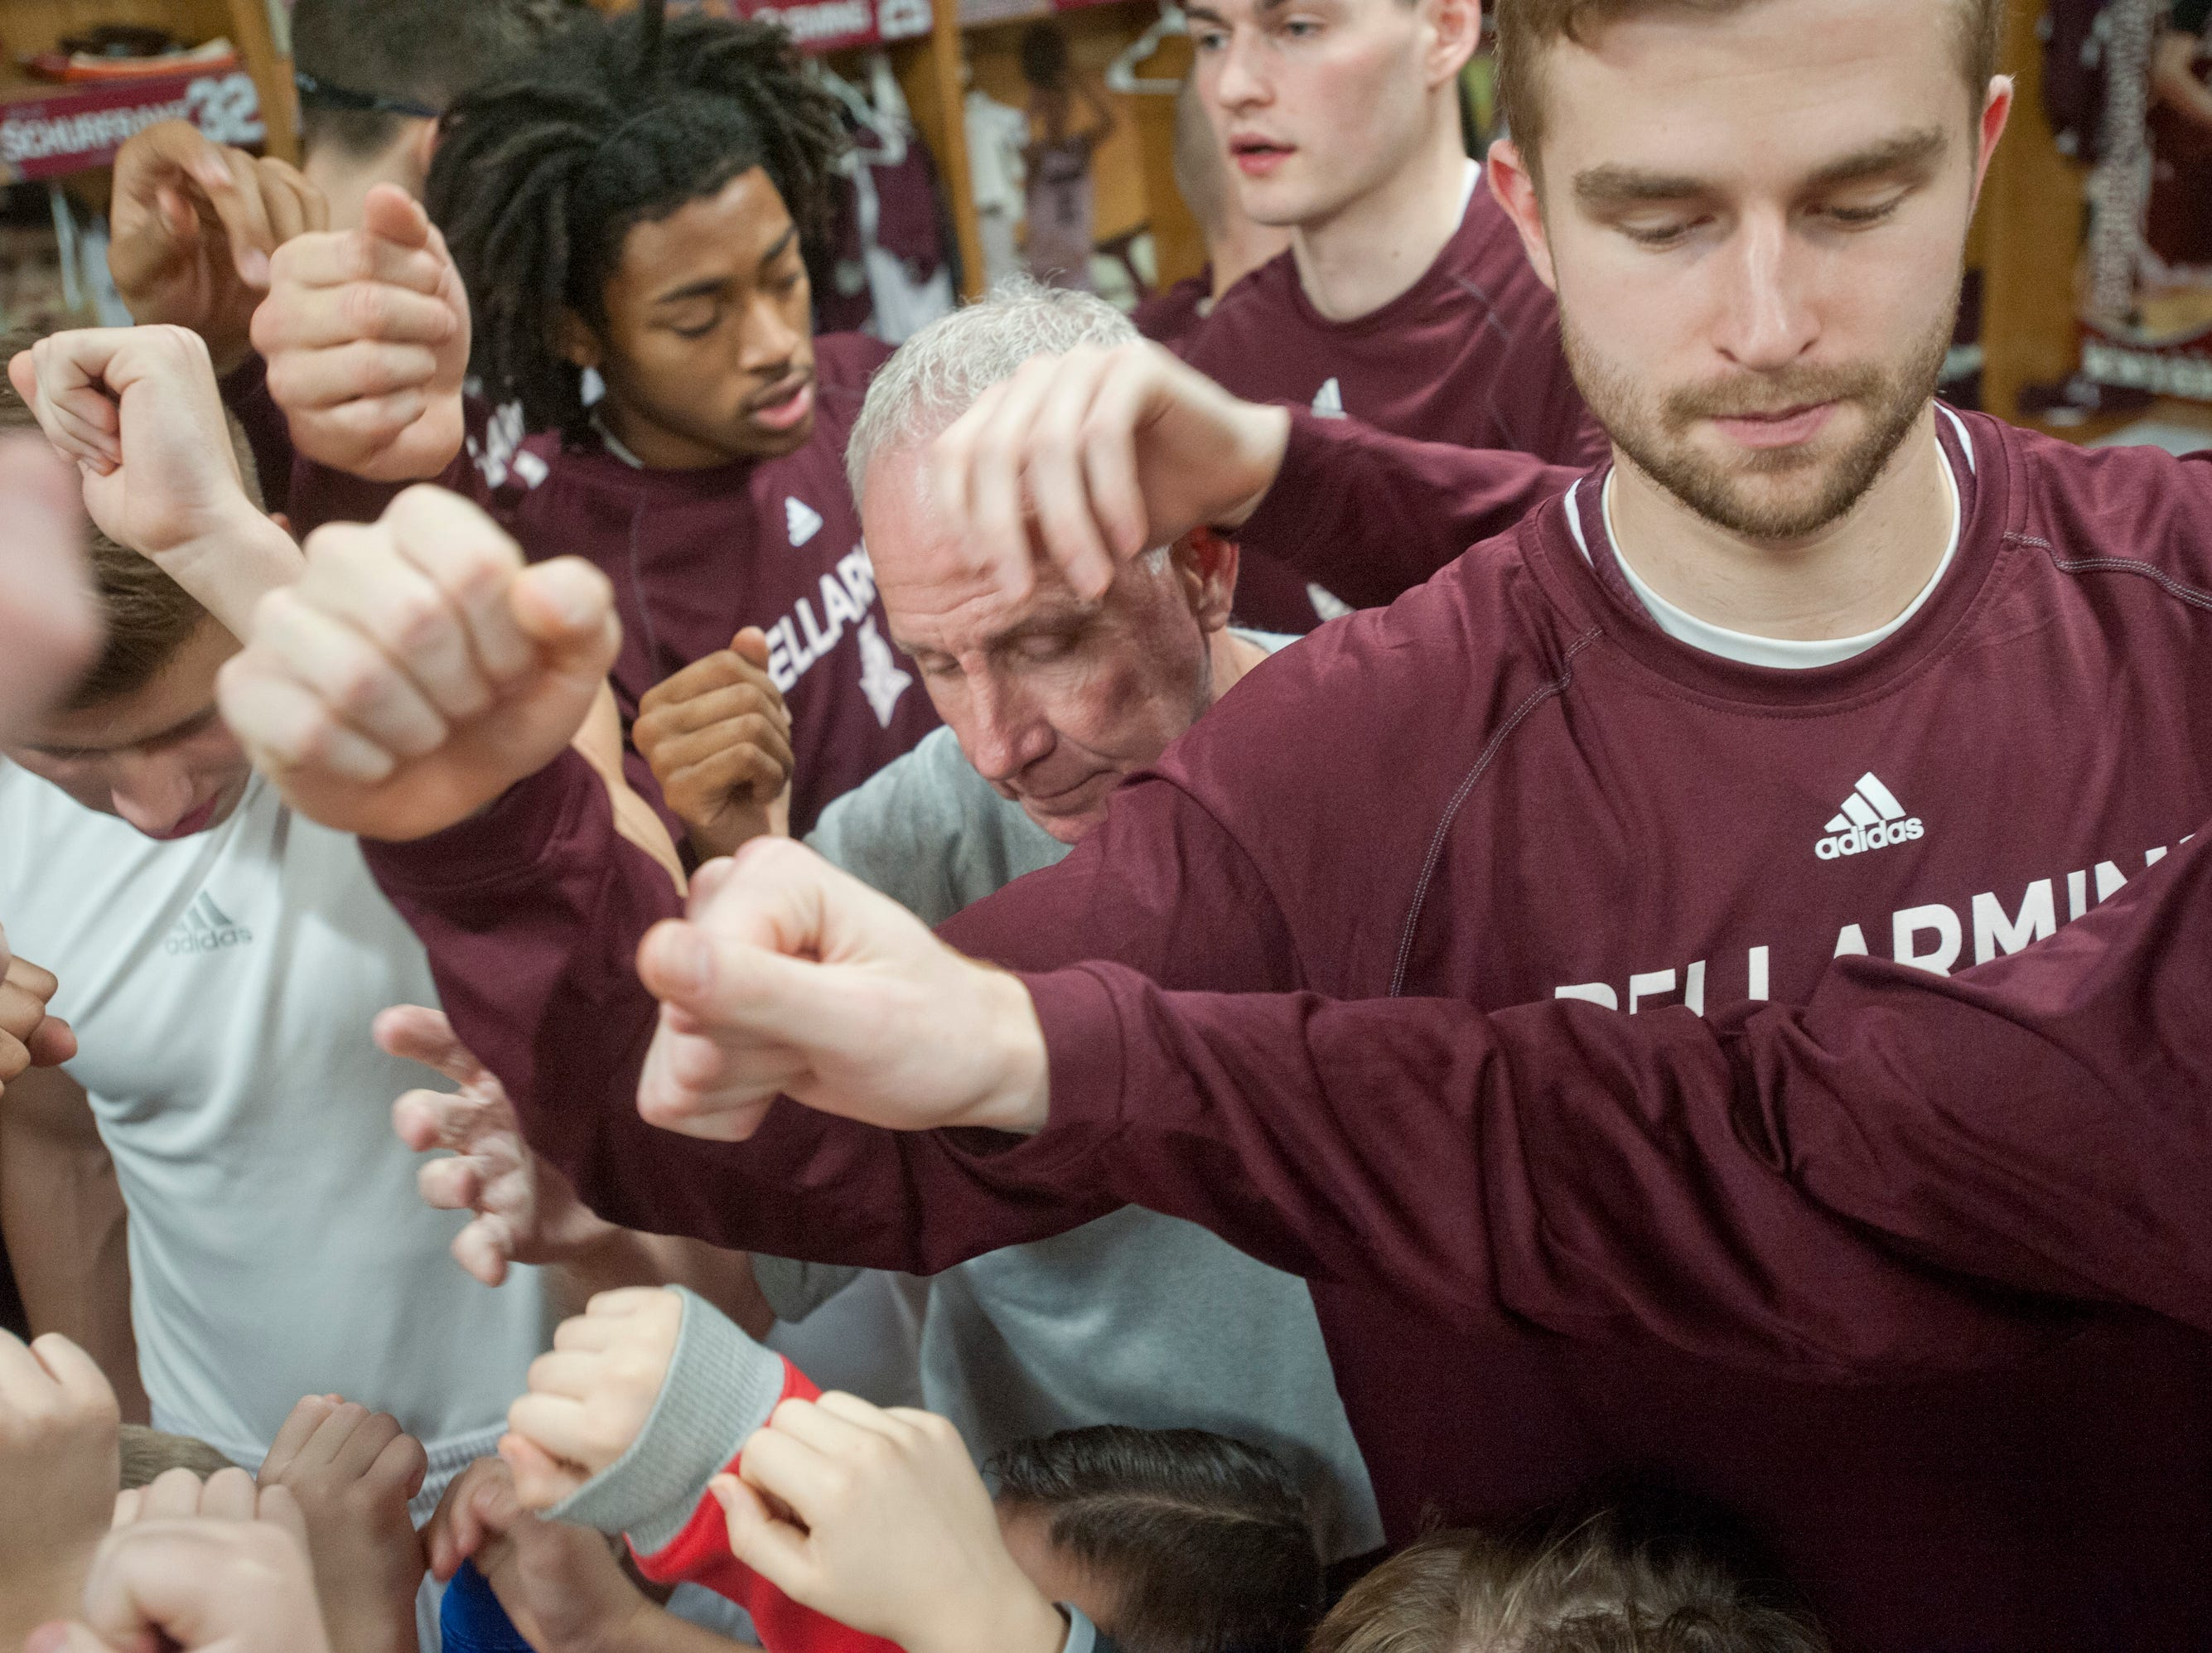 Bellarmine head basketball coach Scott Davenport joins hands with his team at the end of the meeting.18 December 2018